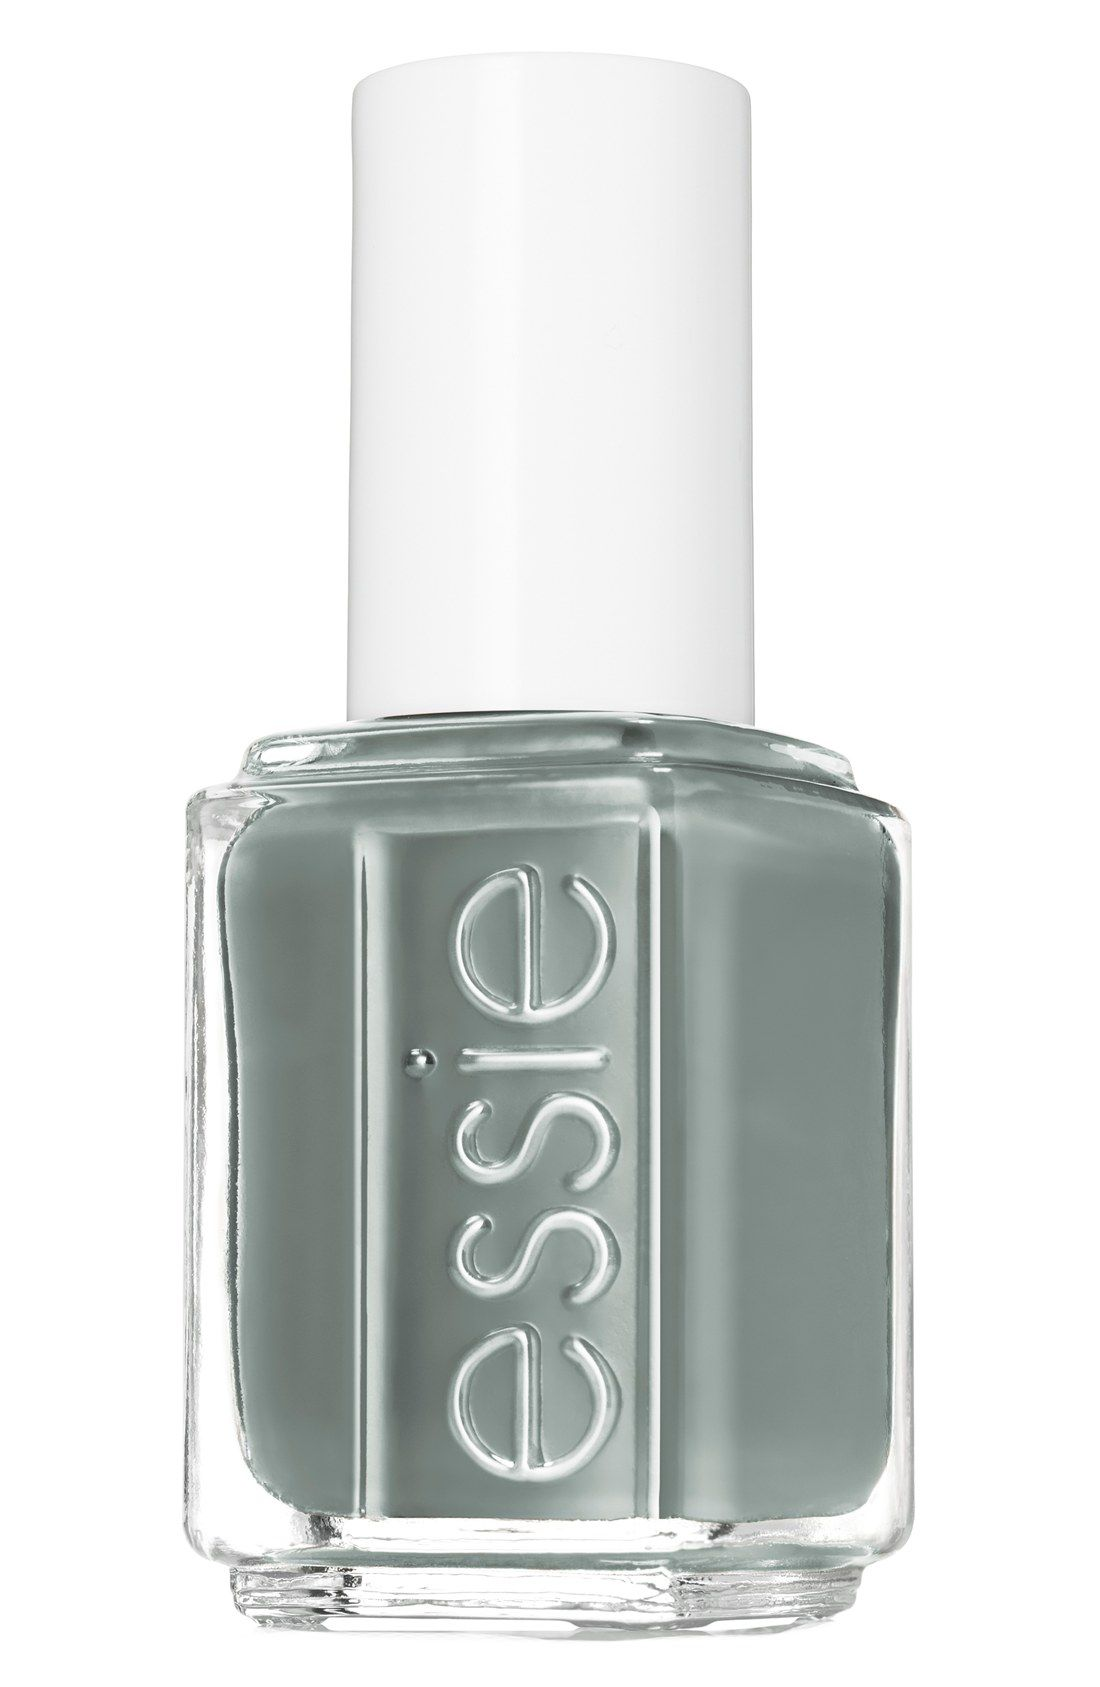 Adore this enigmatic jade green shade for fall | \'Fall In Line ...